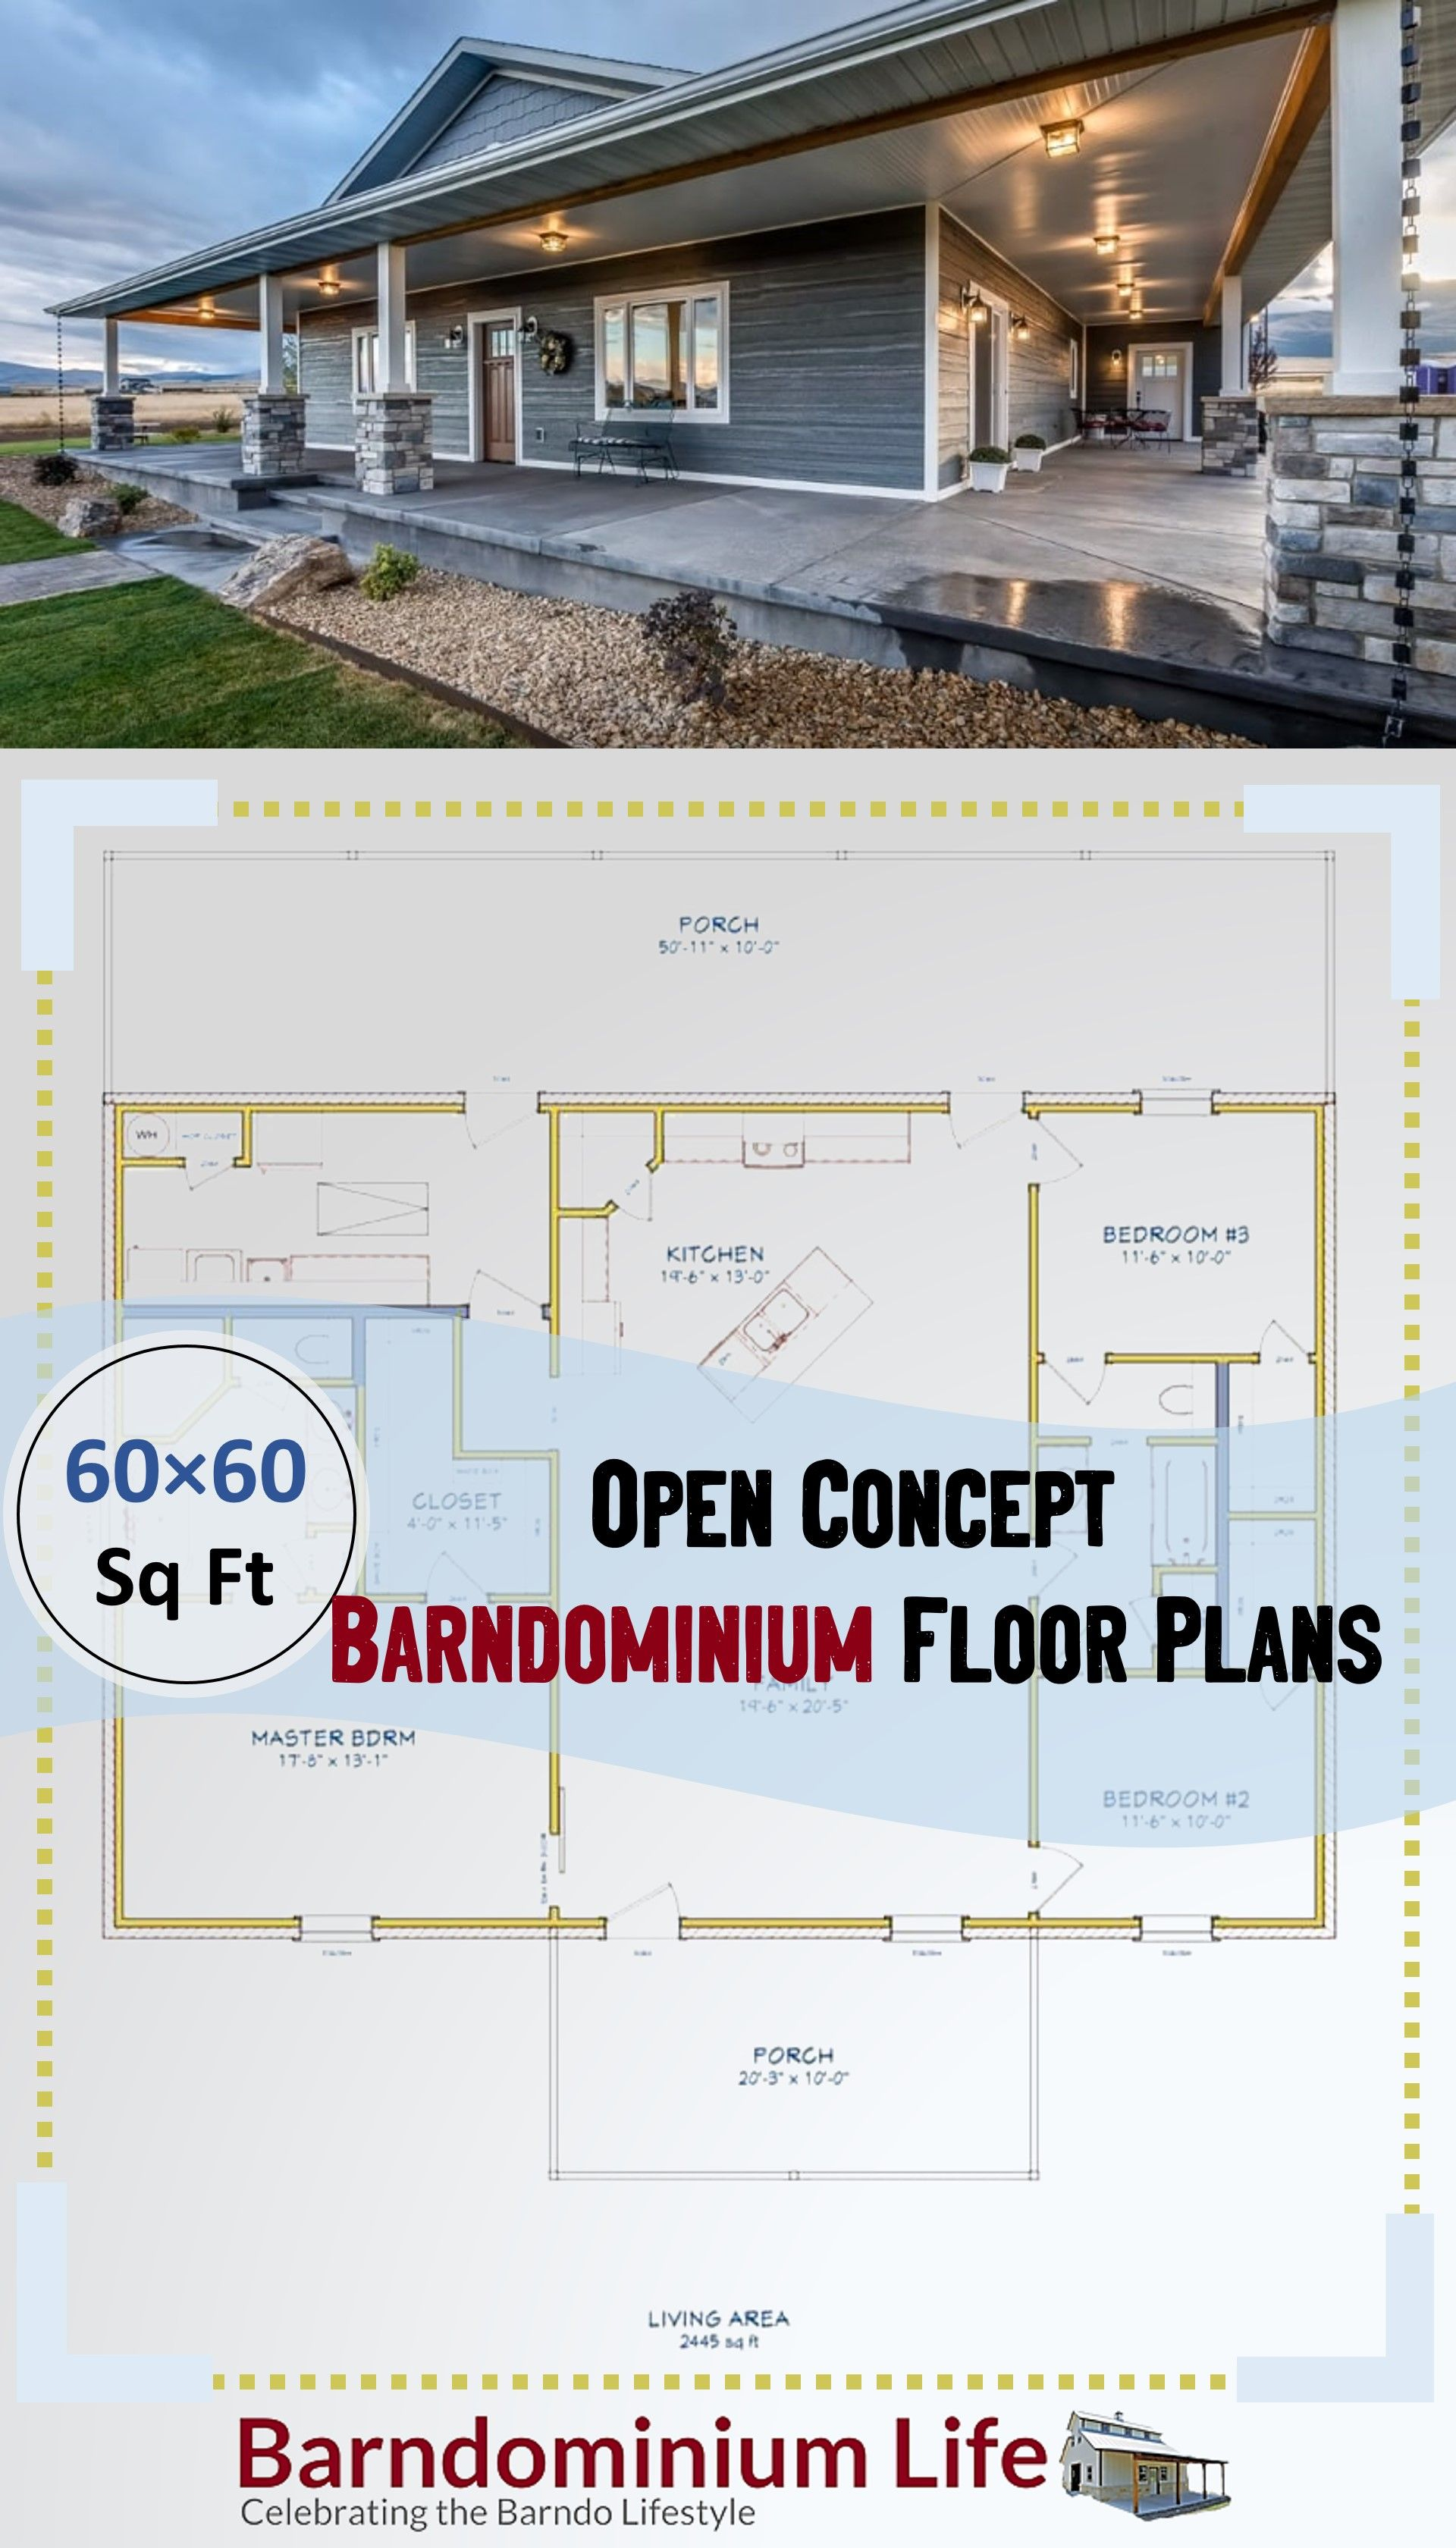 Open Concept Barndominium Floor Plans Metal House Plans Barn House Plans House Plans Farmhouse